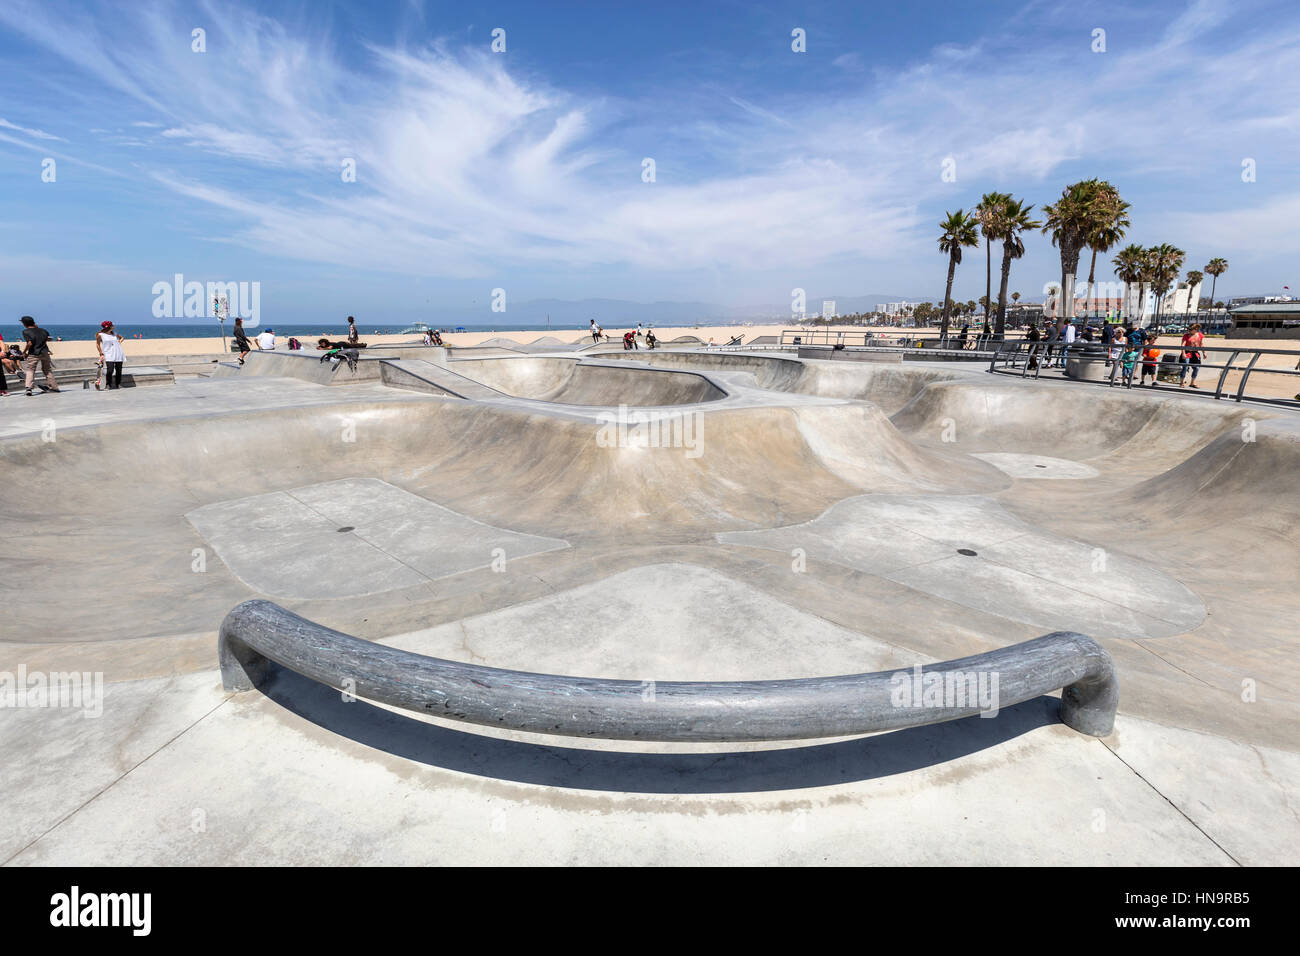 Editorial view of the popular Venice beach skate board park in Los Angeles, California. - Stock Image